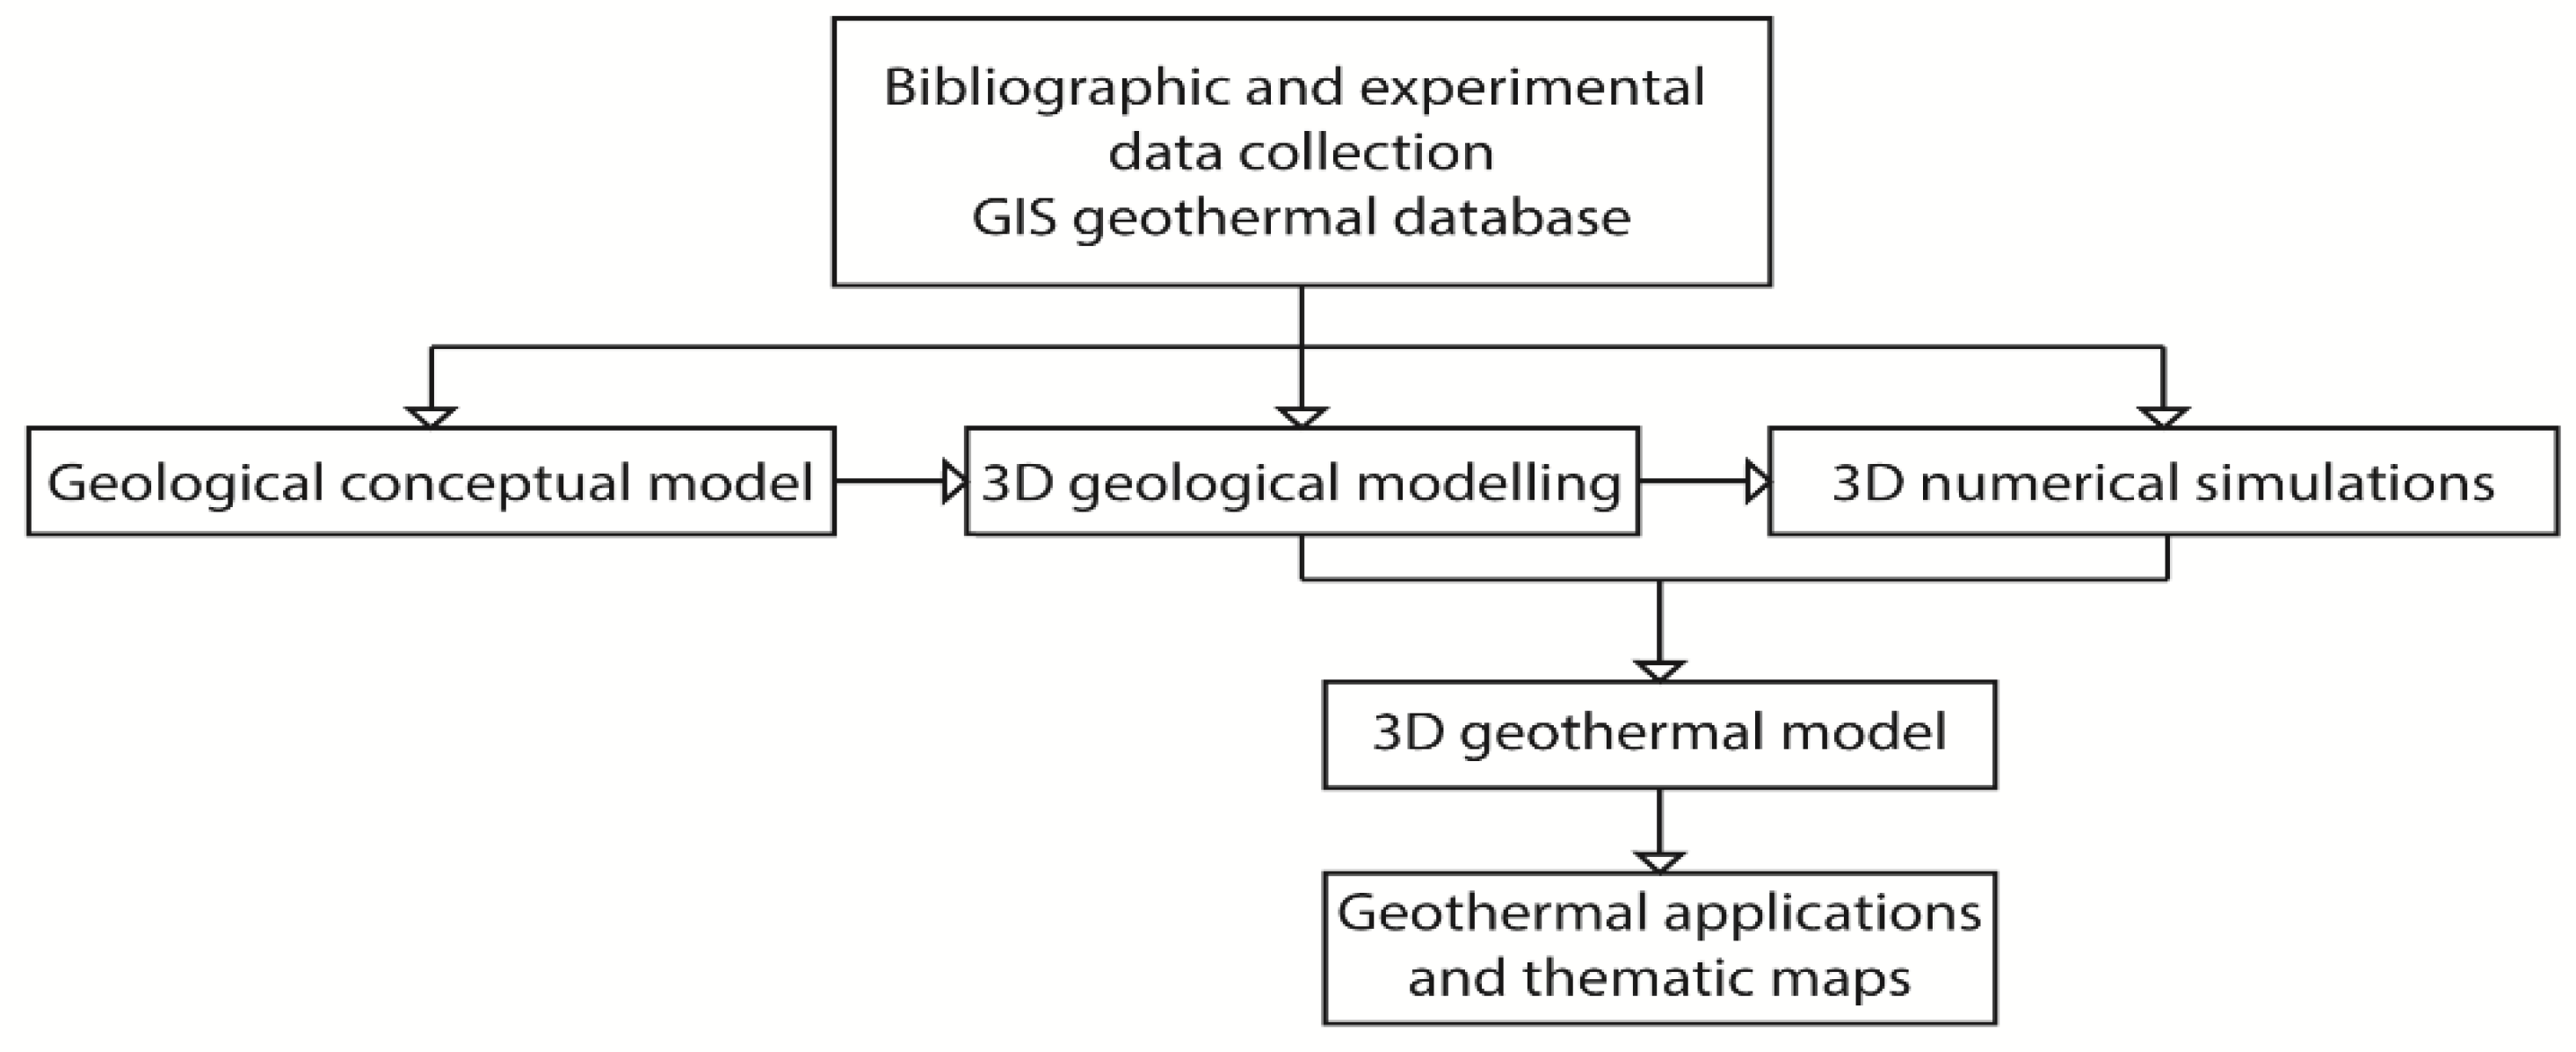 Energies | Free Full-Text | The Integration of 3D Modeling